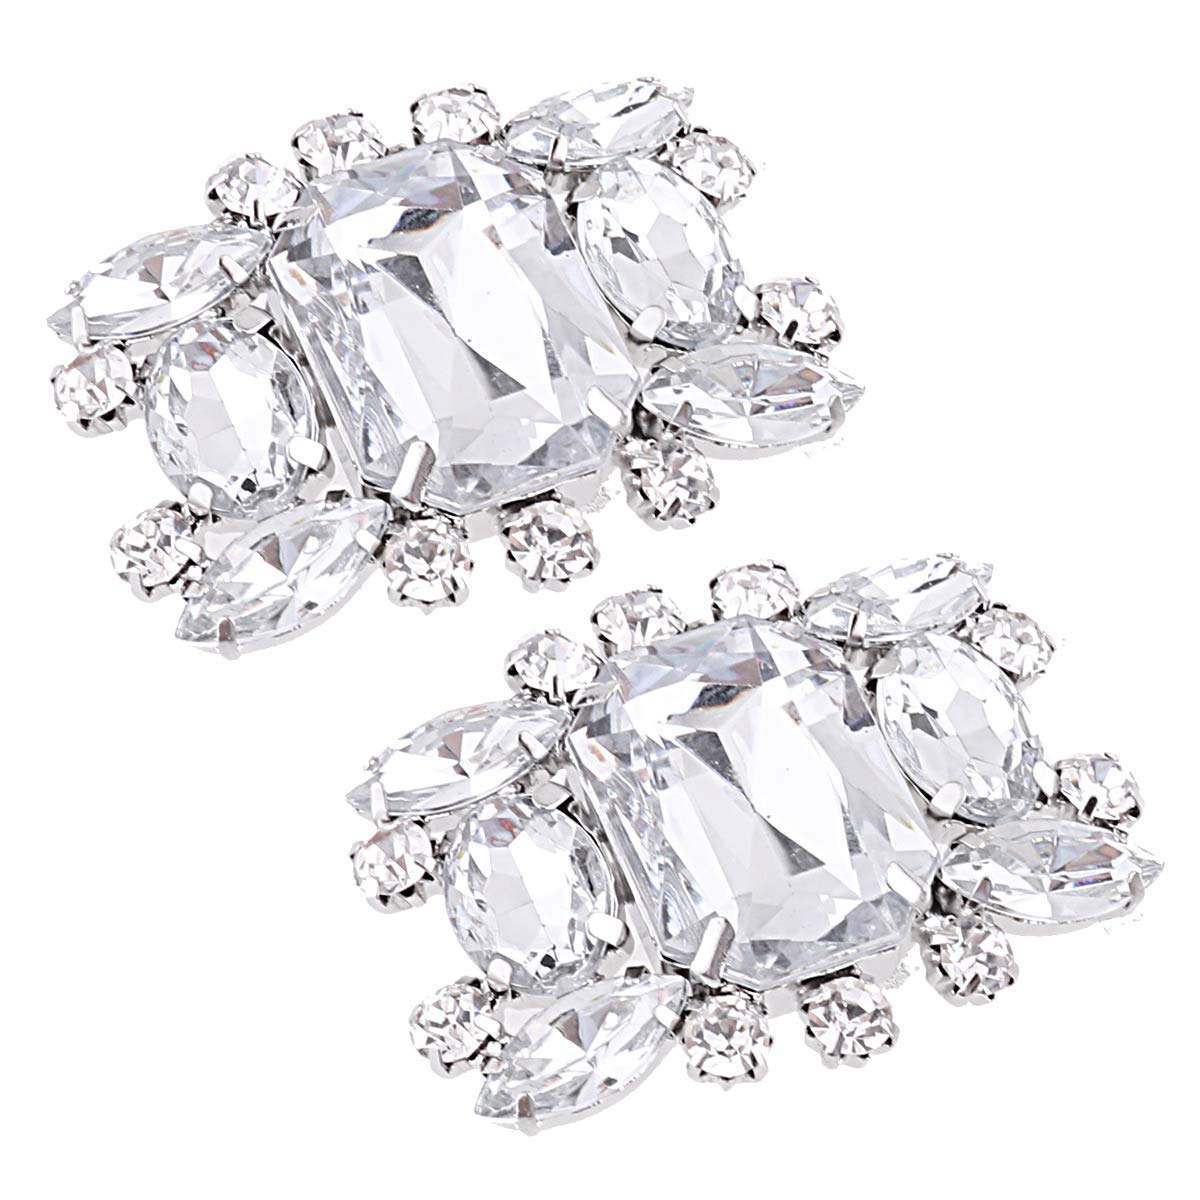 CHICTRY 1 Pair Shining Crystal Rhinestones Shoe Clips Women Fashion Charming Clutch Bag Dress Hat Shoes Decorations for Wedding Party Prom Type G One Size